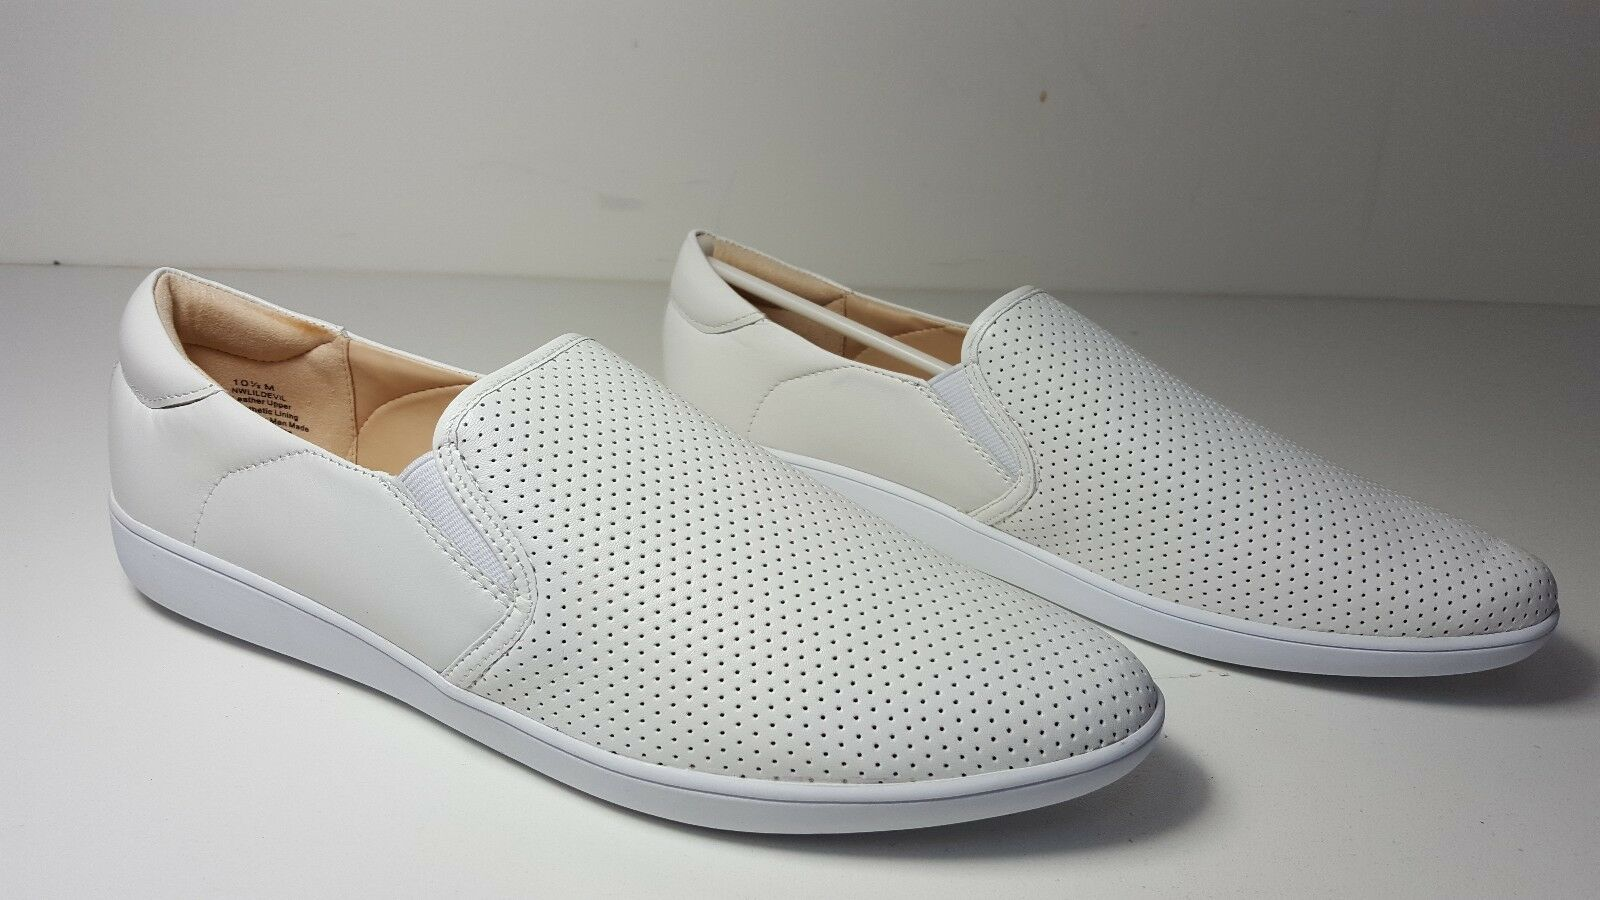 $79 size 10.5 Nine West Lildevil White Leather Sneakers Flats Slip Ons Shoes